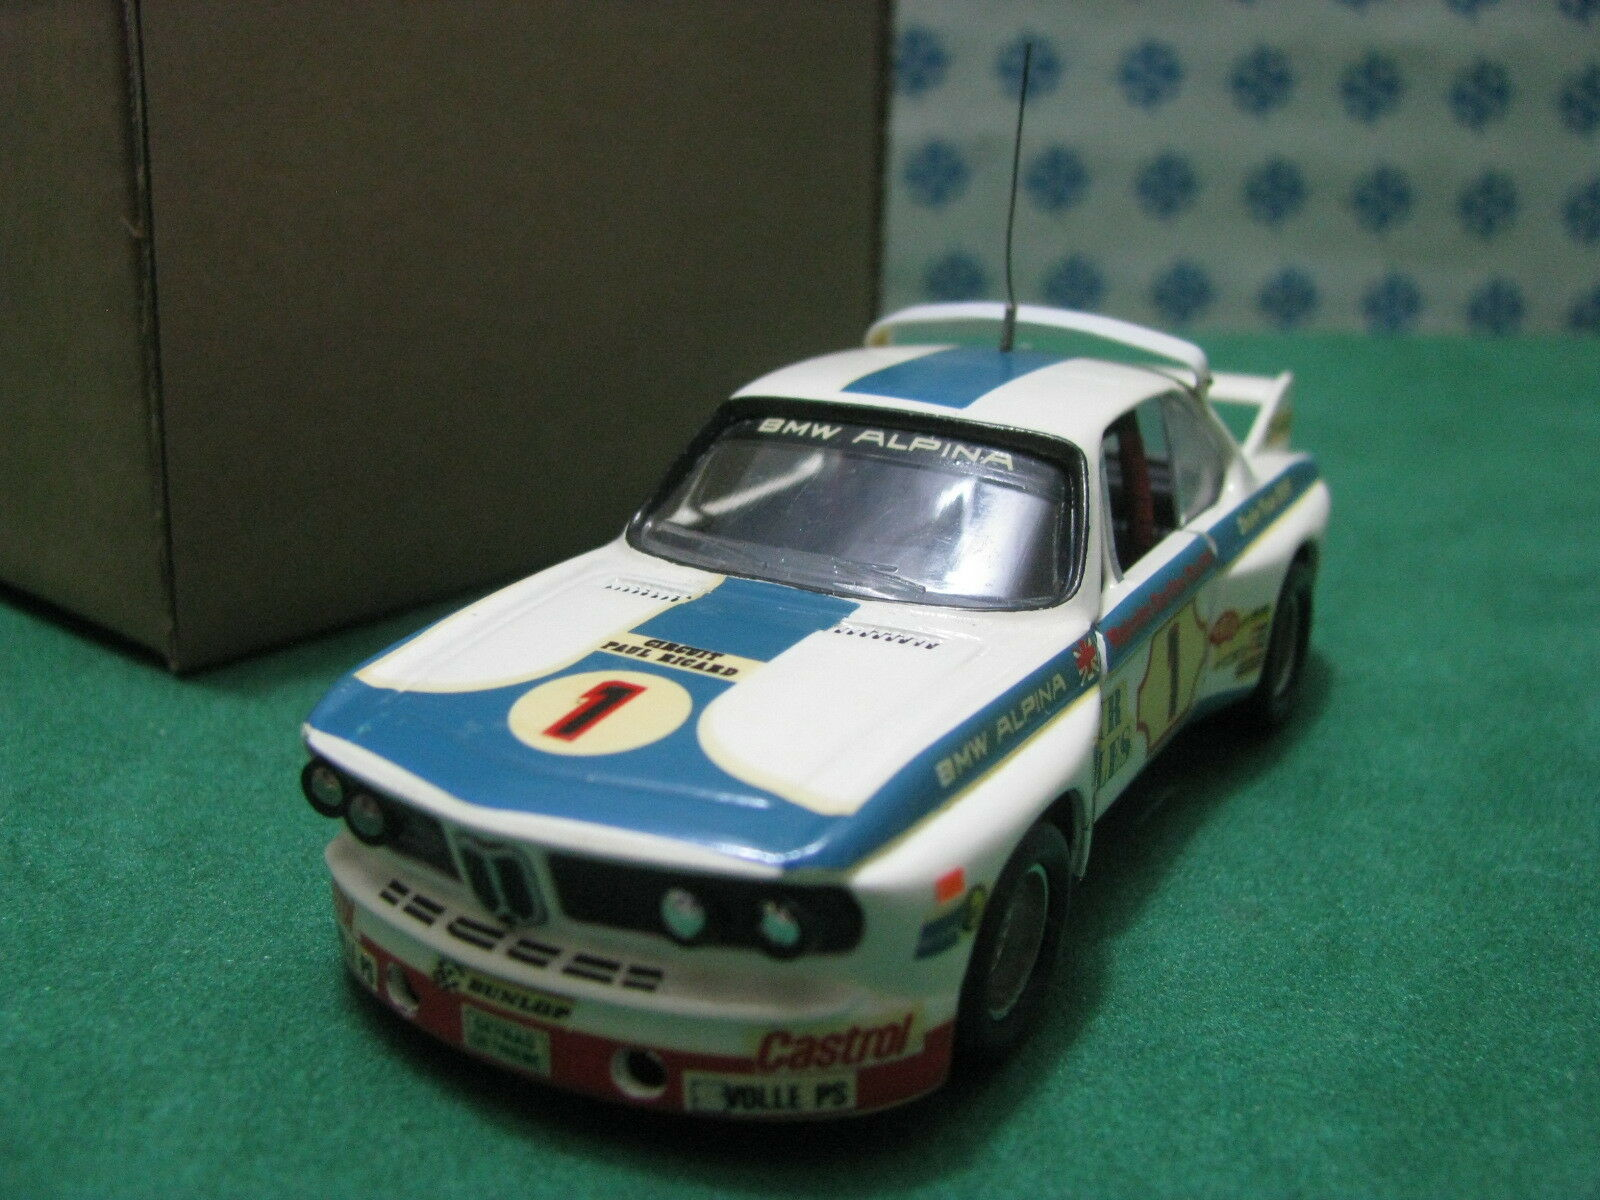 Vintage - BMW 3000 CLS Team BMW Alpina - 1 43 Traitement Solido 1974